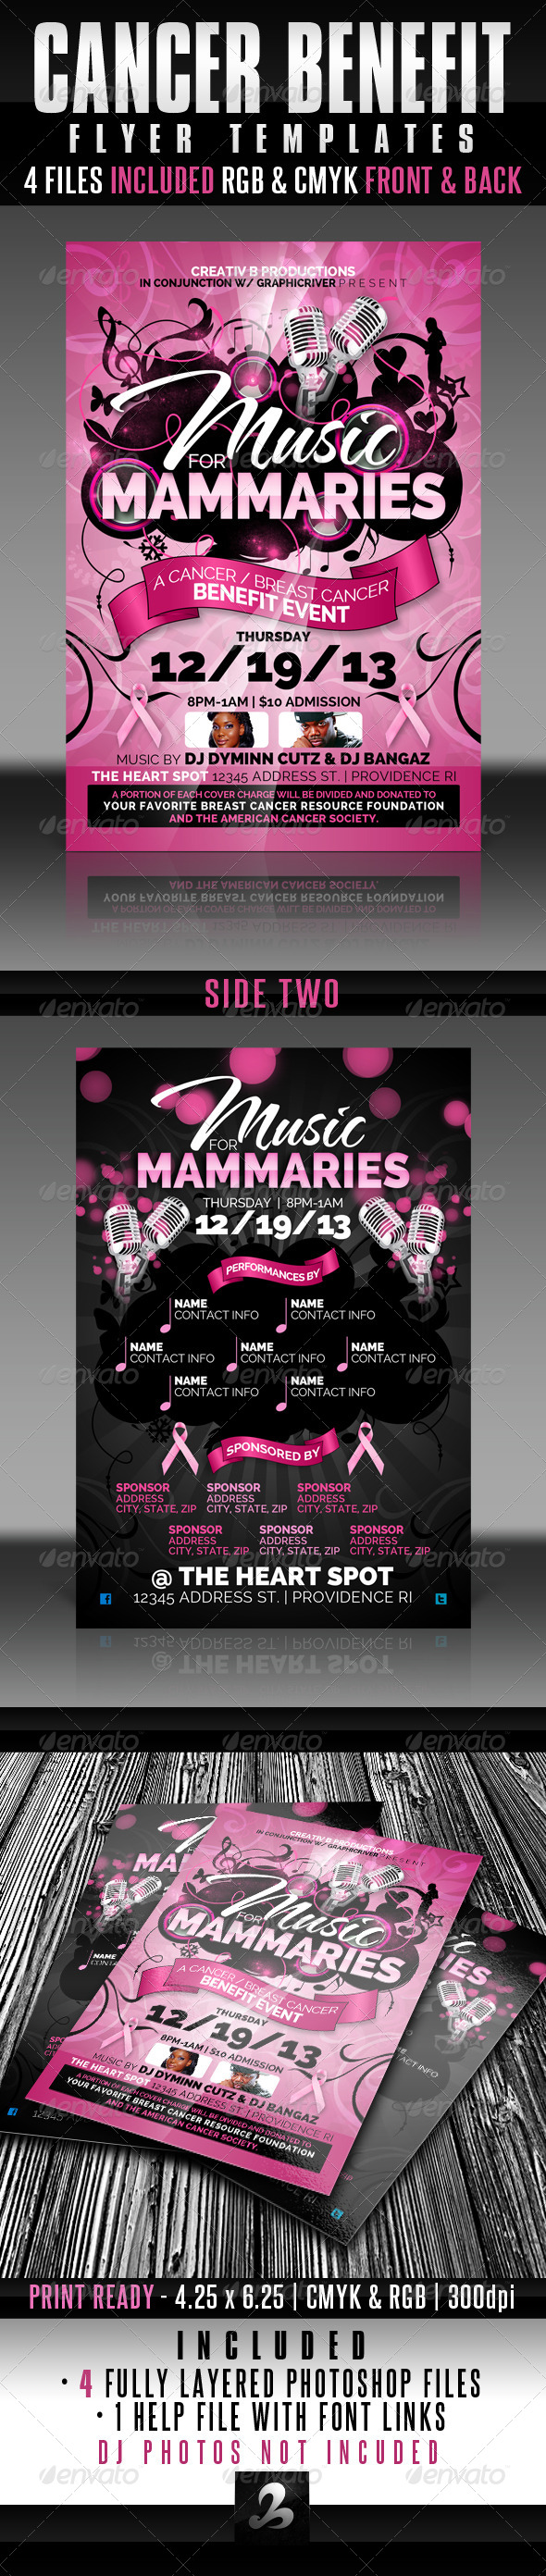 GraphicRiver Cancer Benefit Flyer Templates 6333742